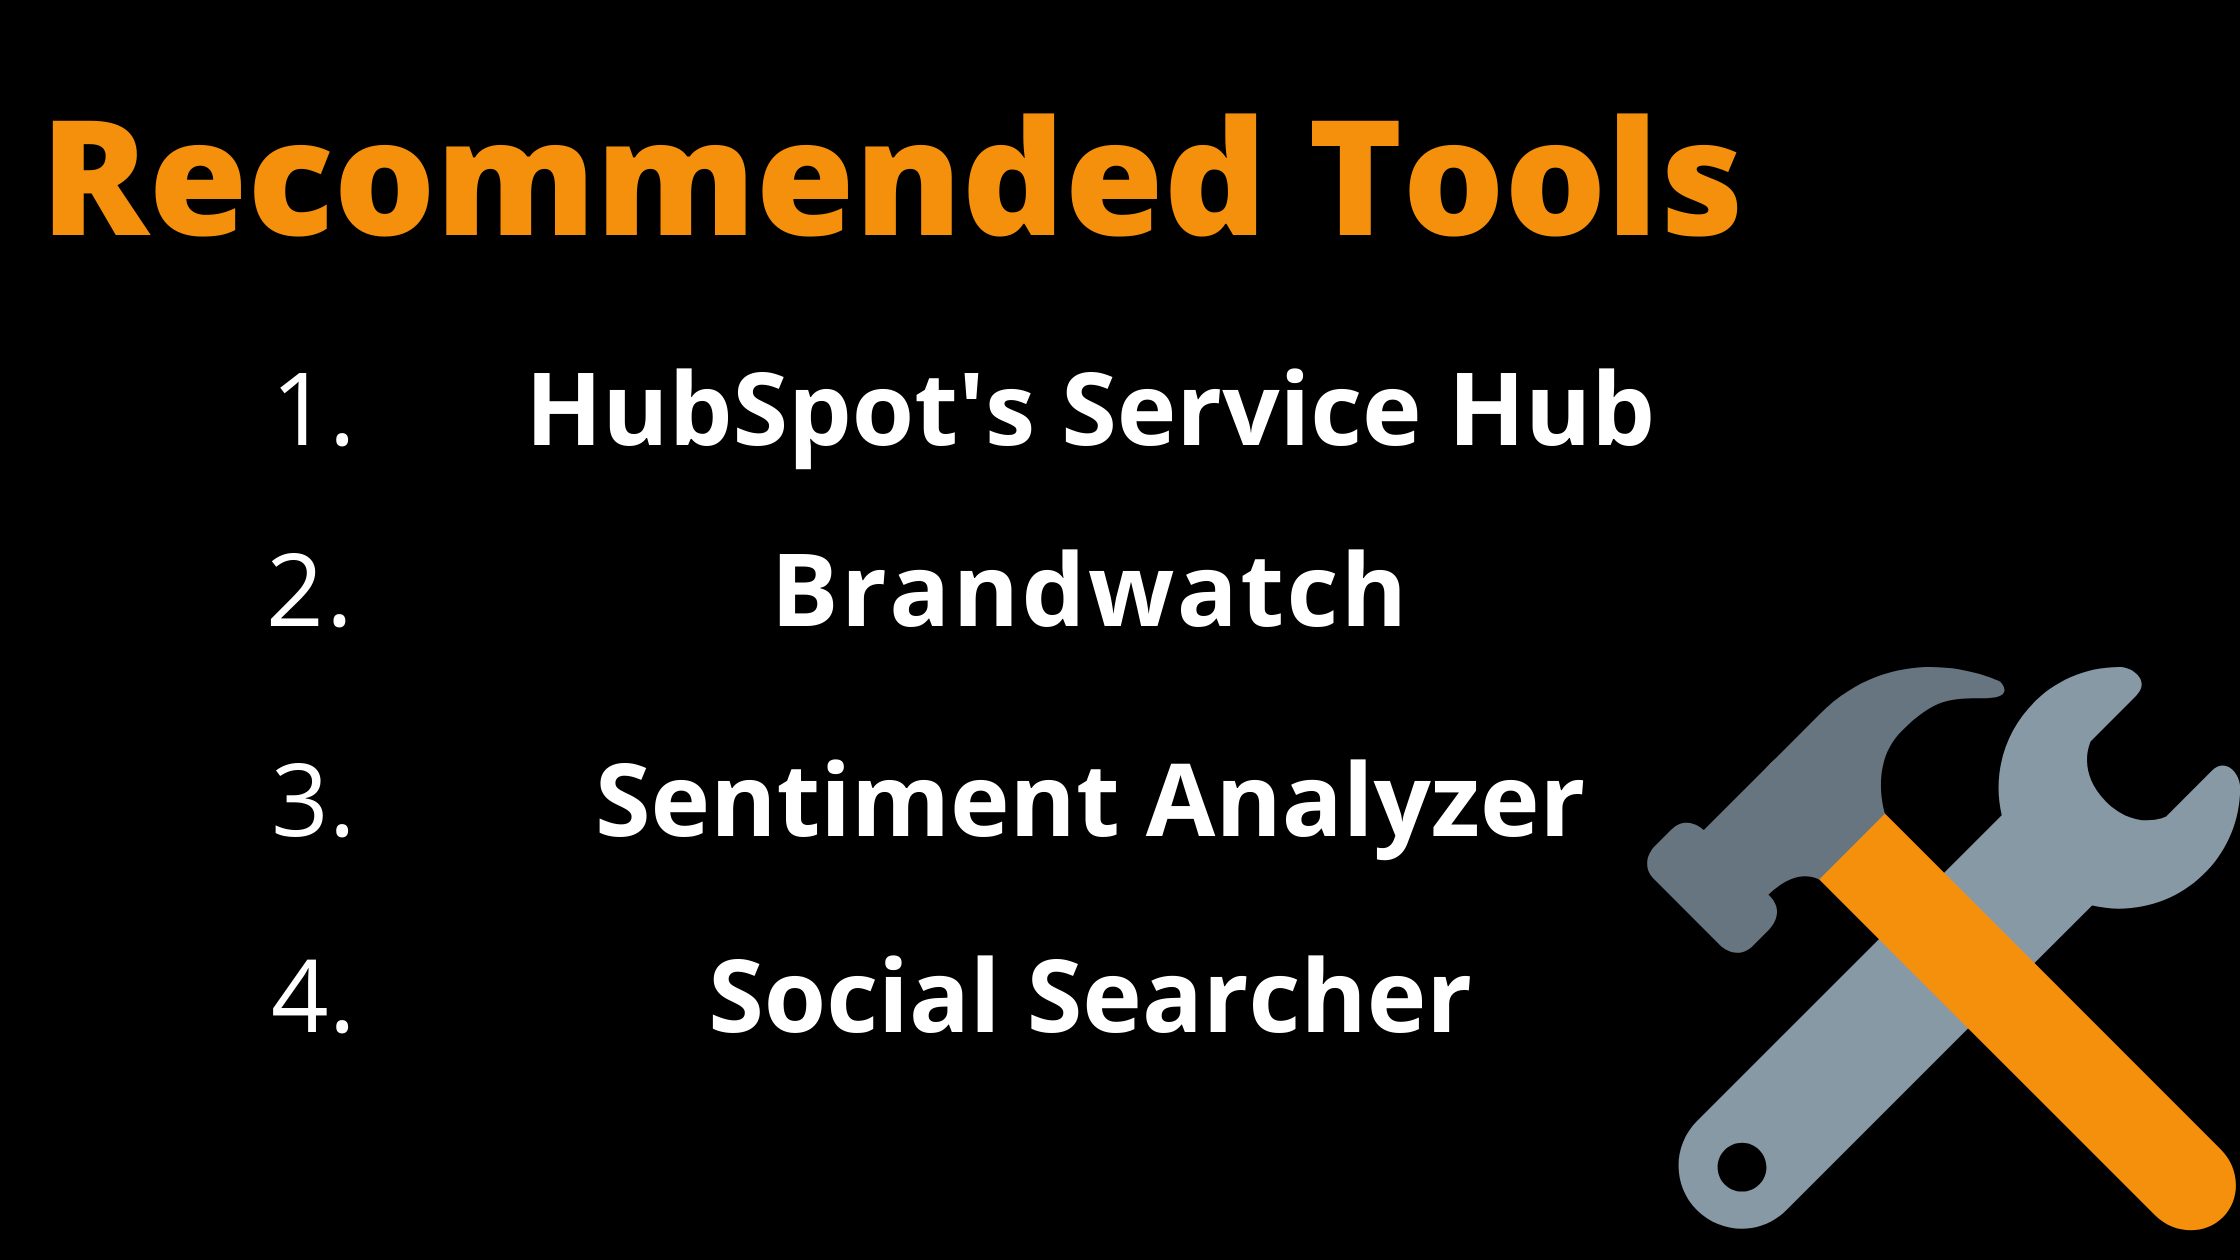 Recommended tools for Sentiment Analysis